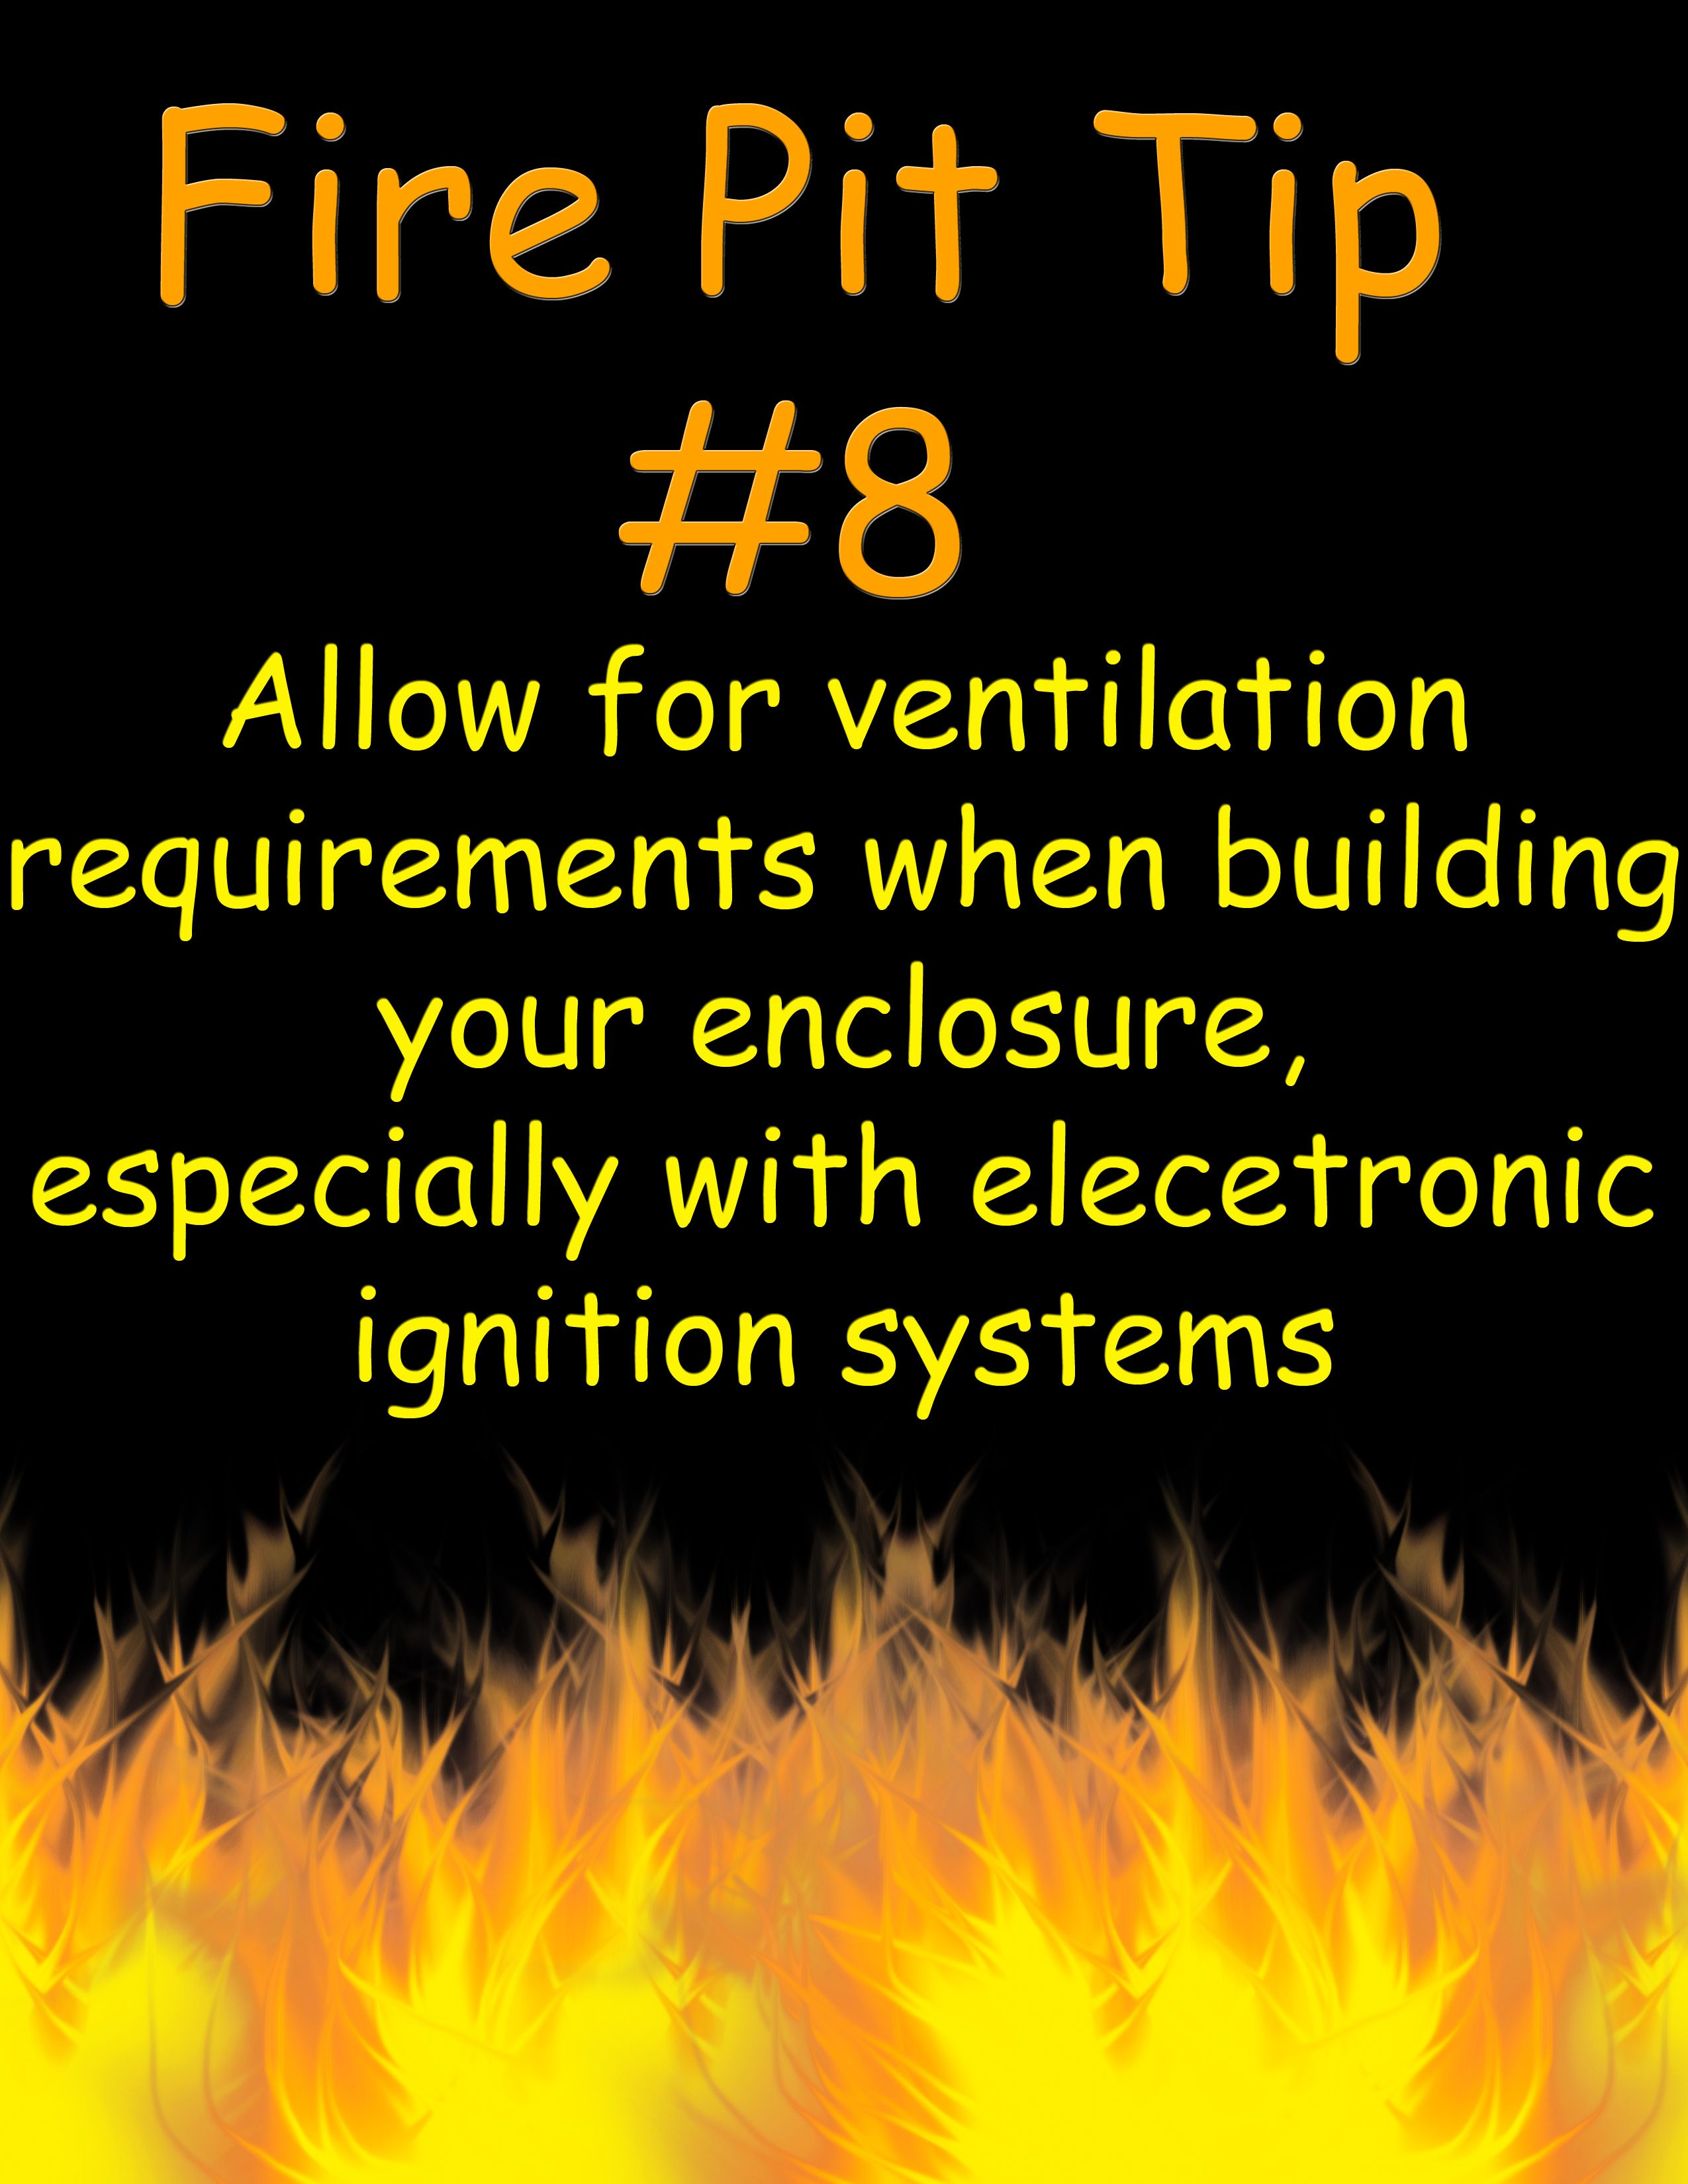 Allow For Proper Ventilation Requirements Firepit Diy Gas Fire Pit Fire Pit Gas Firepit